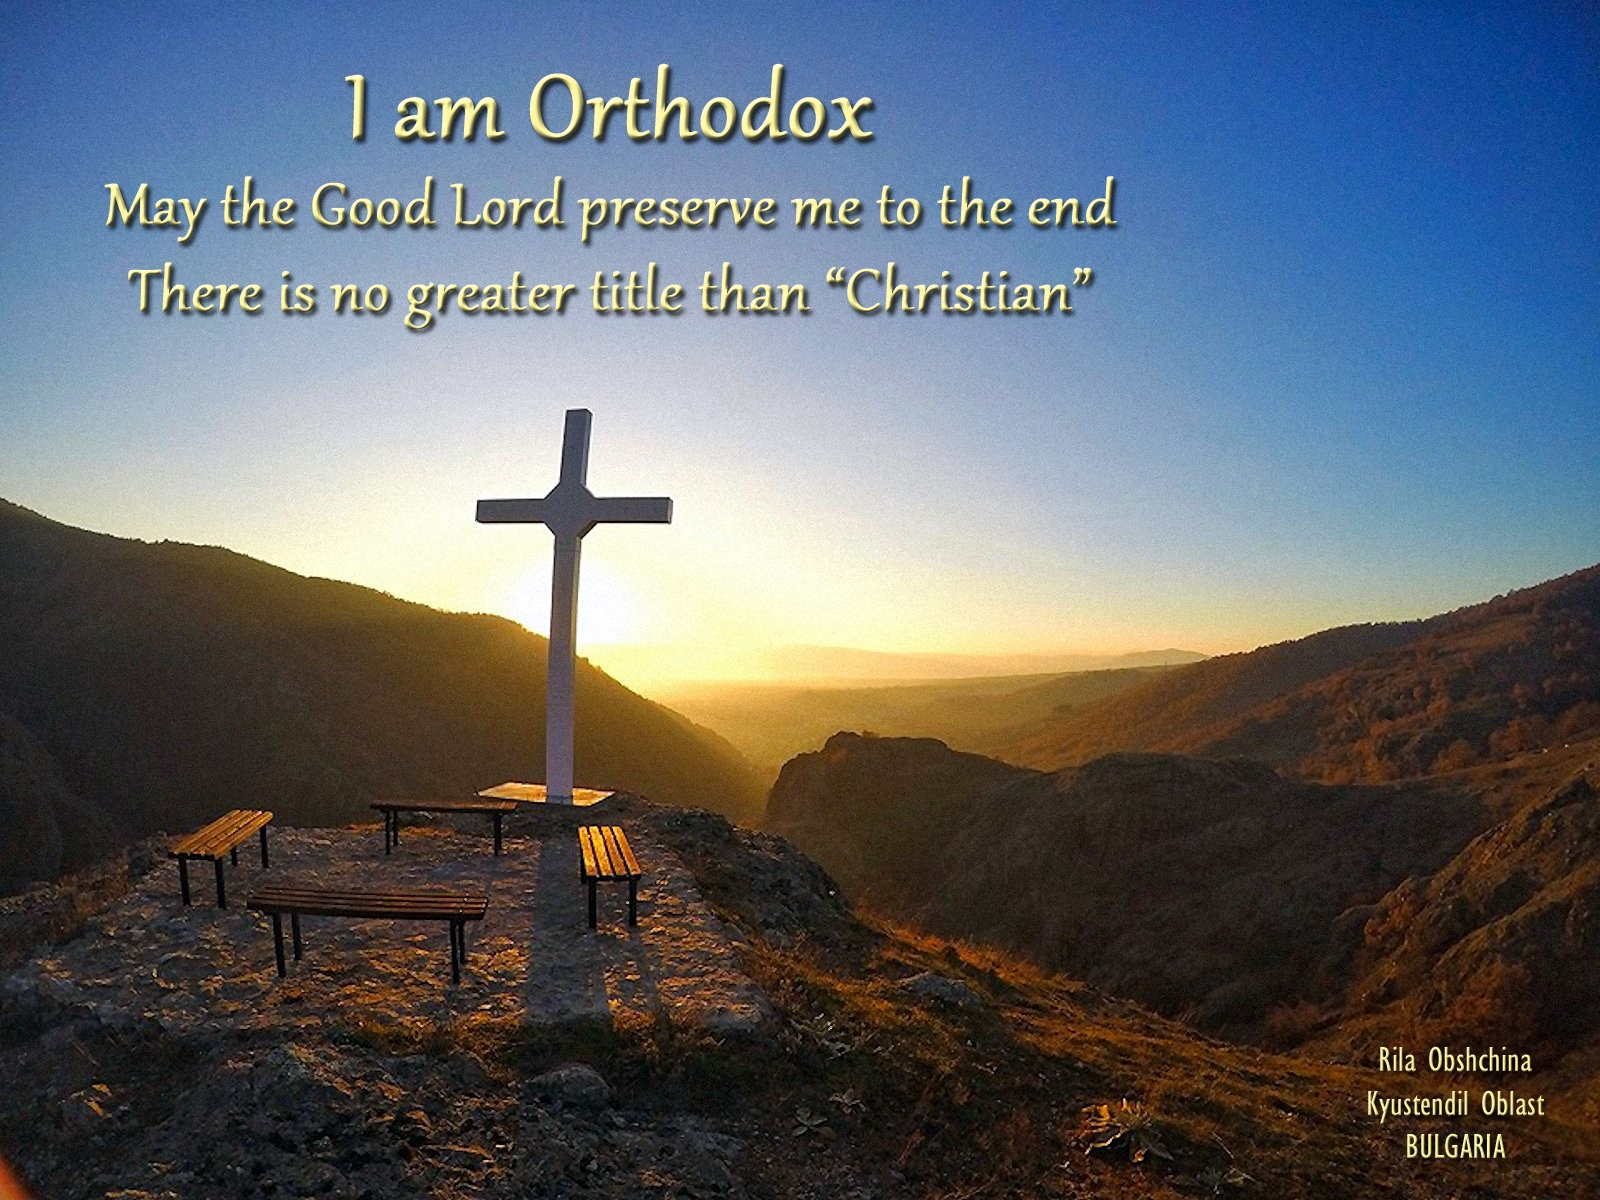 00 I am Orthodox 150316